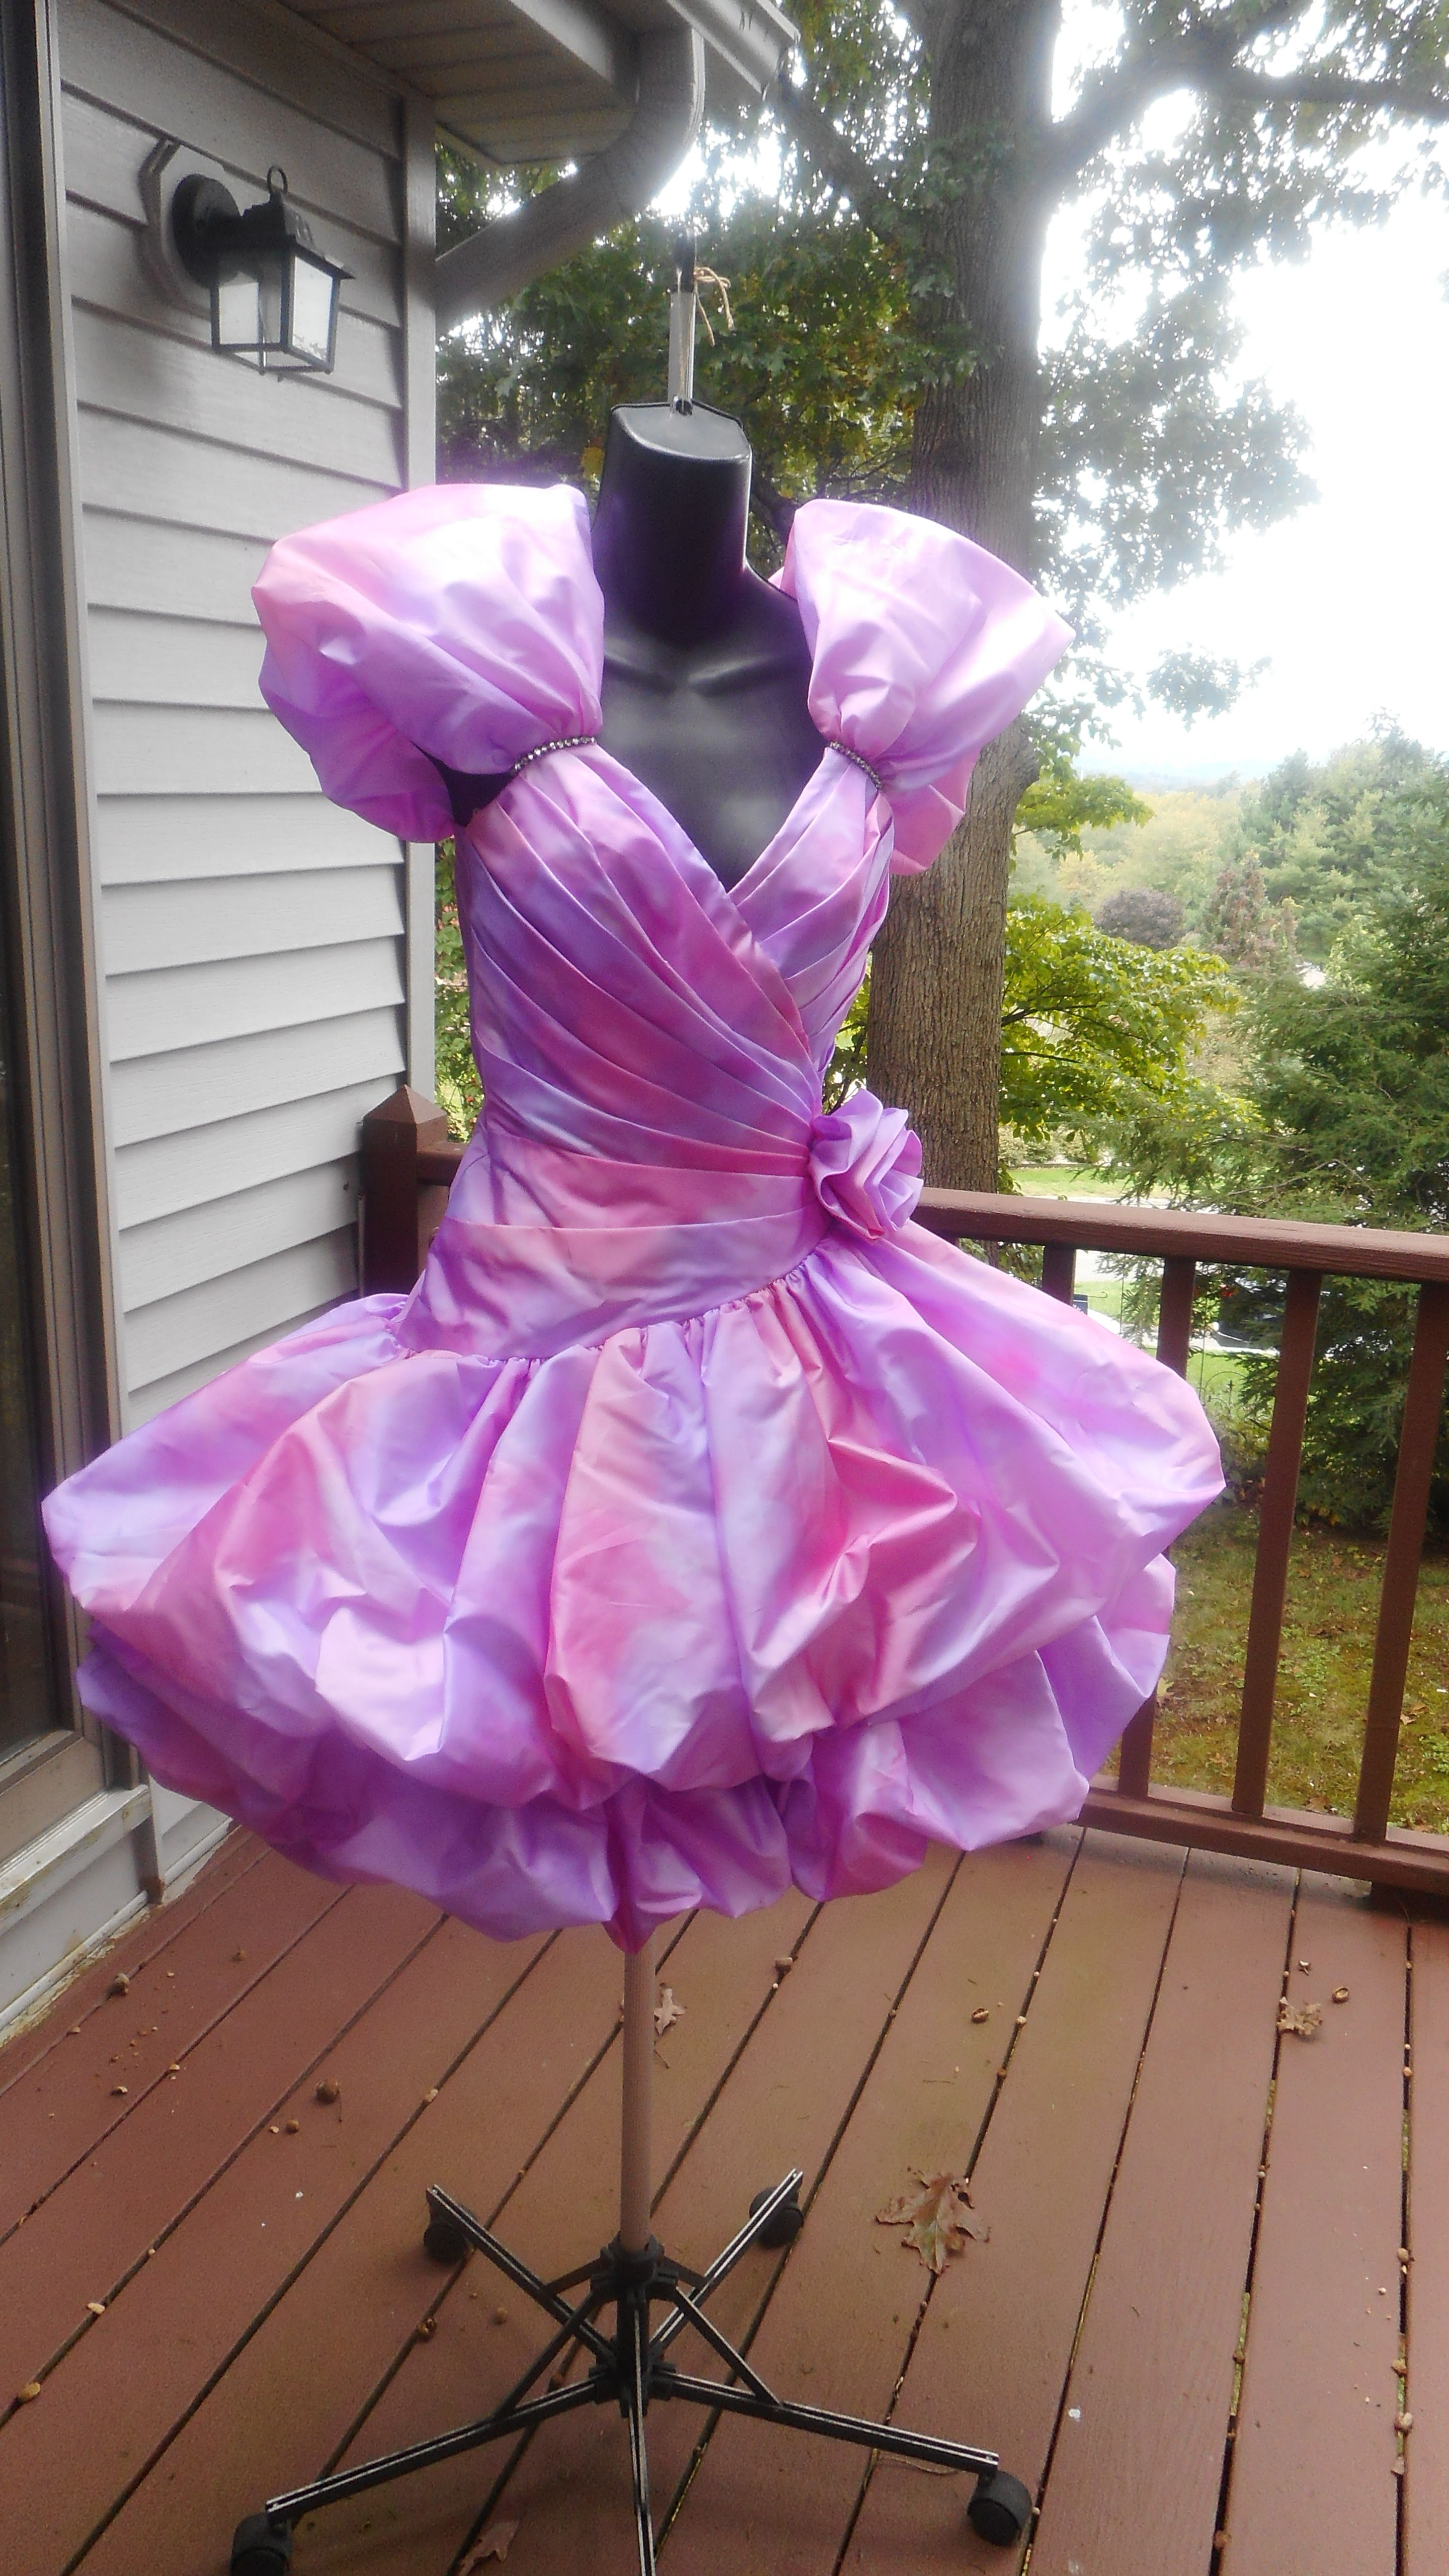 Available For Rent On Facebook On Vintage 80s Prom Dresses 80s Prom Dress Lovely Dresses Prom Dresses 80s [ 5120 x 2880 Pixel ]